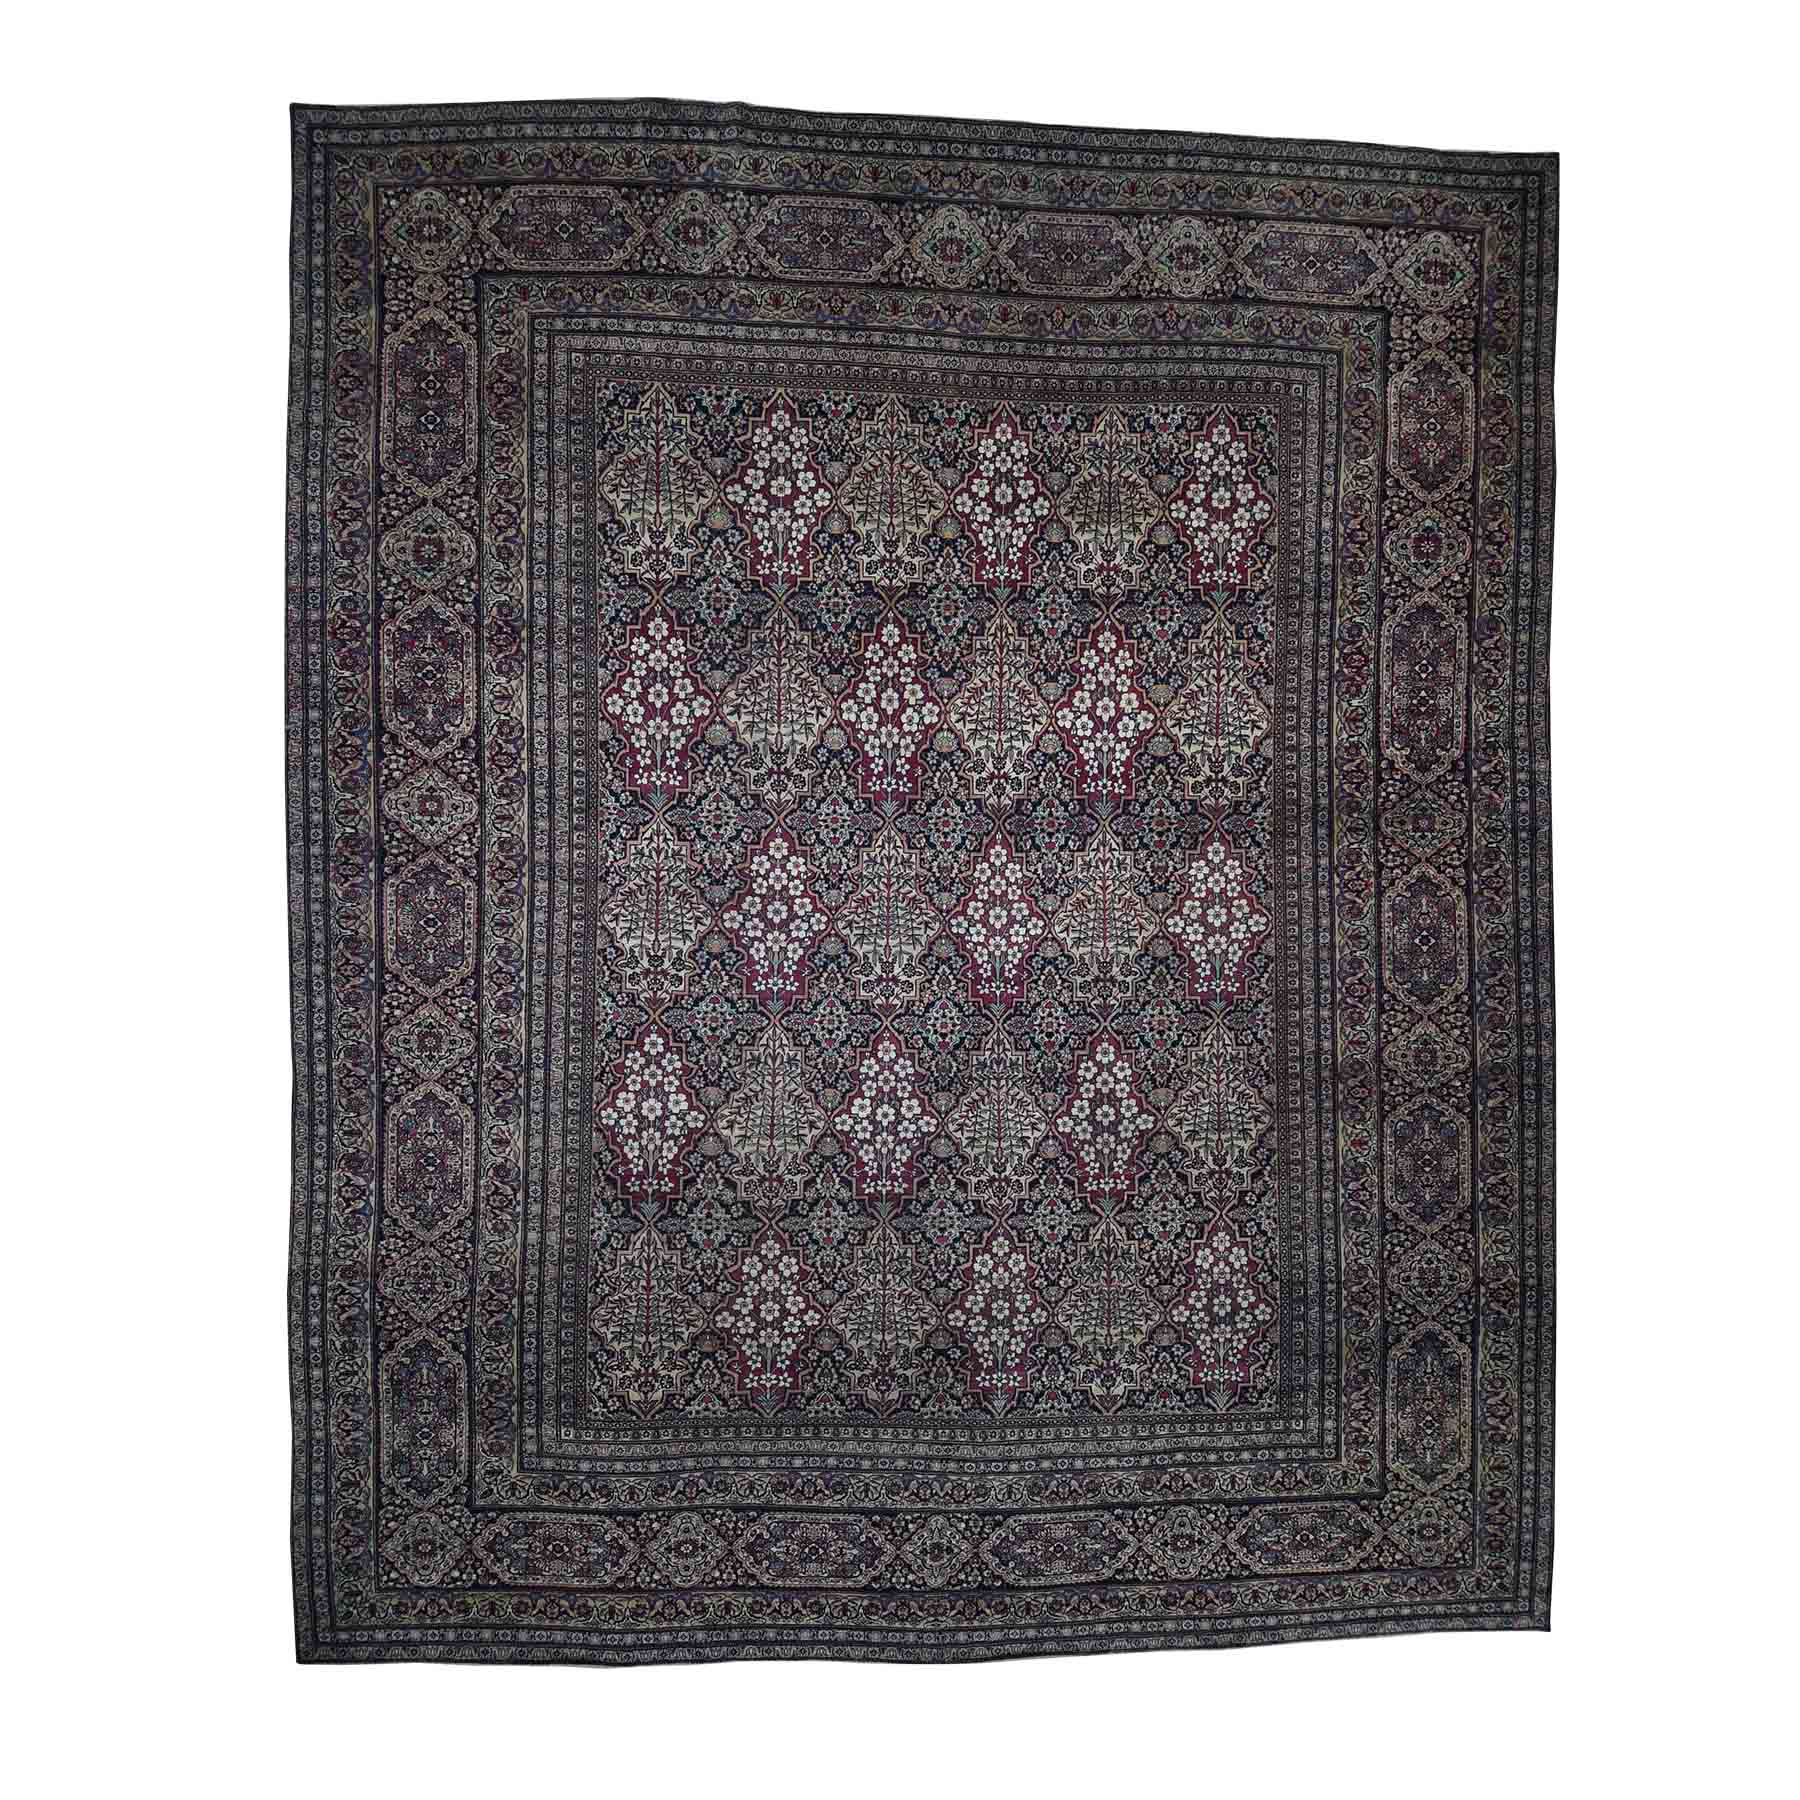 "14'X16'9"" Antique Persian Kerman Shah Good Condition Even Wear Hand-Knotted Oversize Oriental Rug moadaa79"